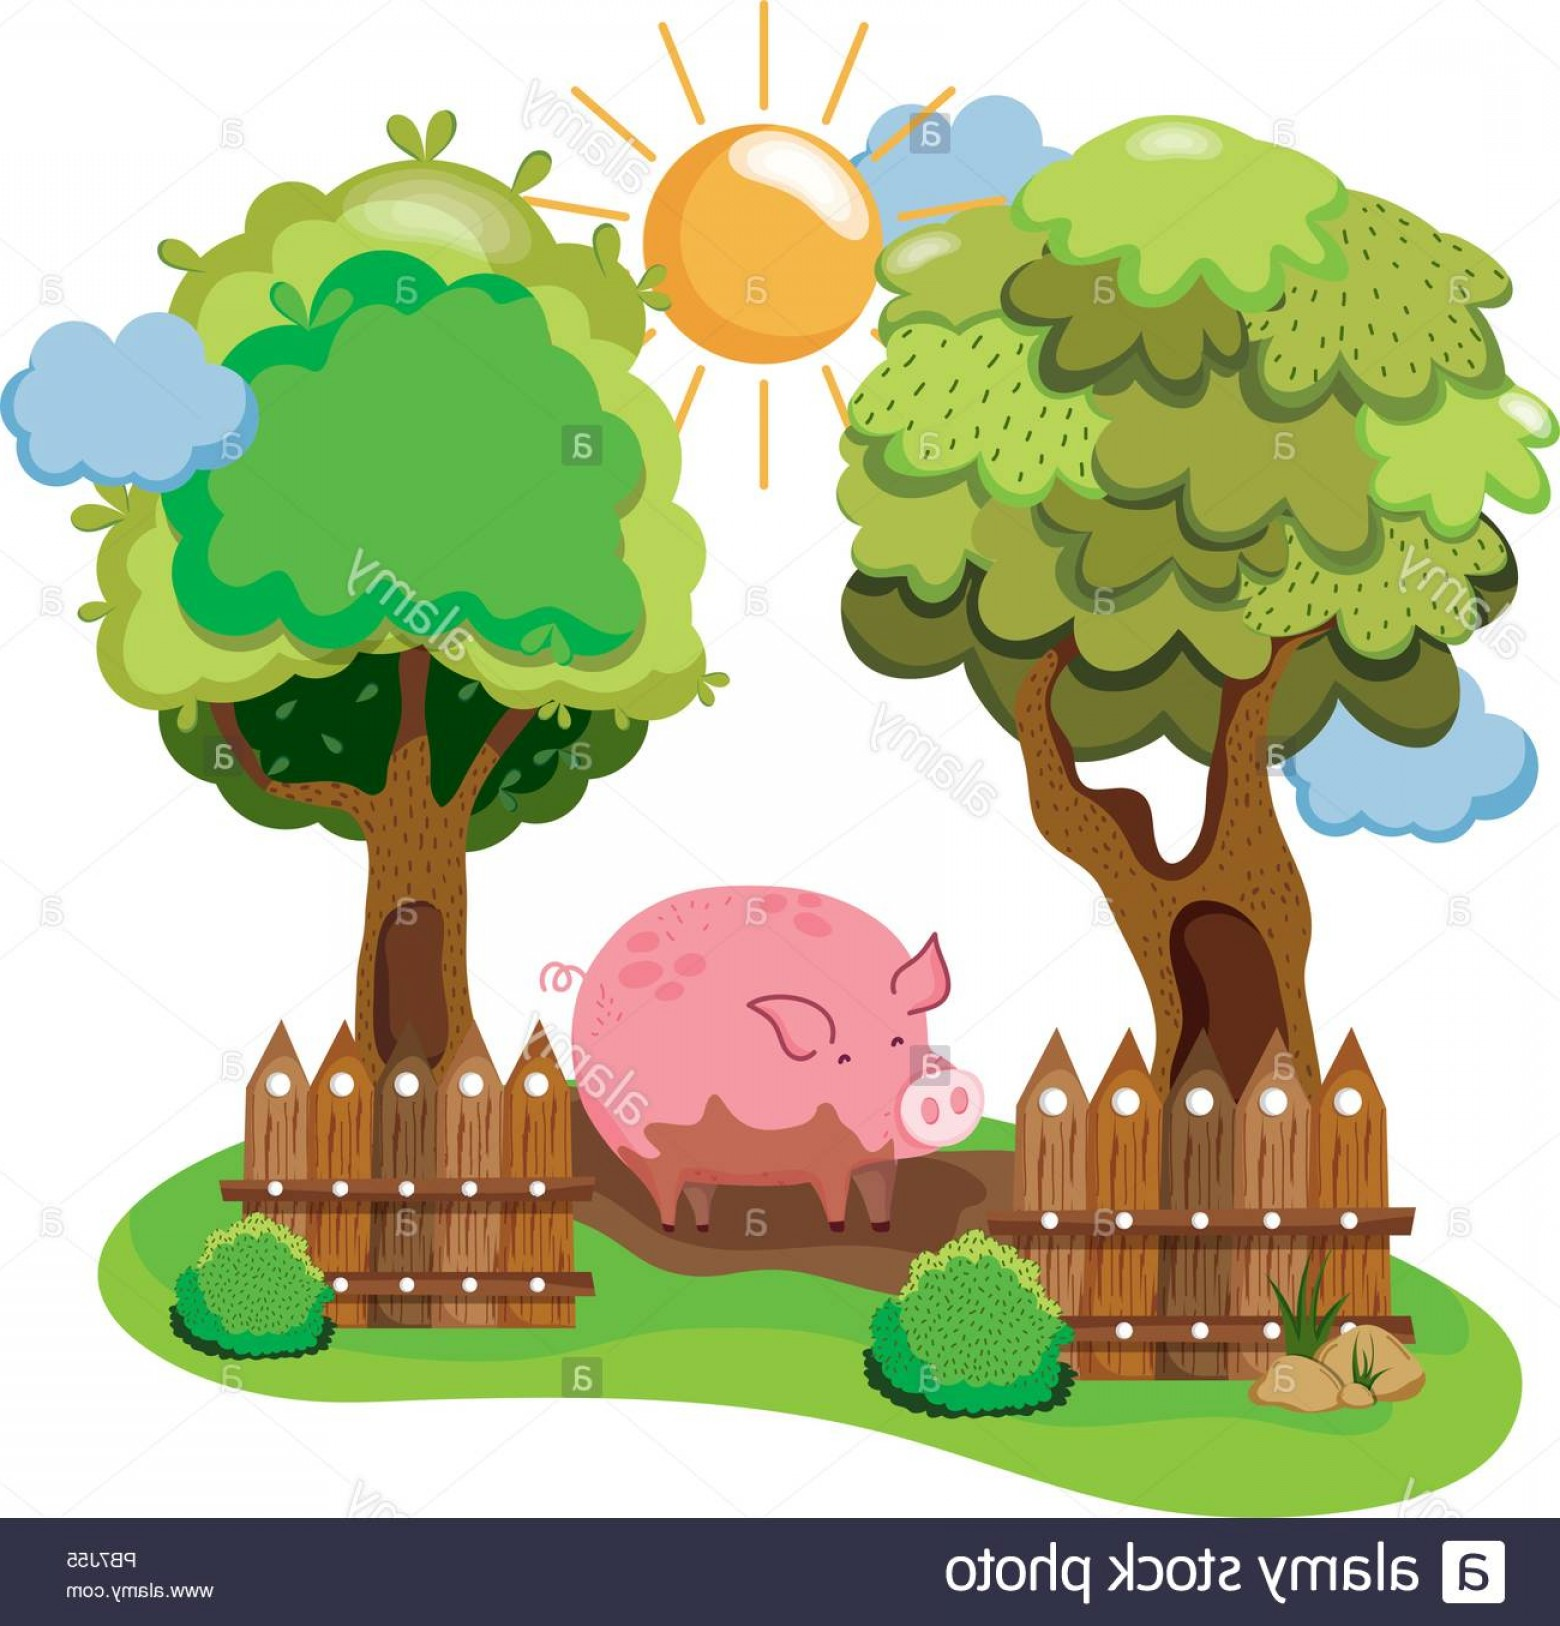 Swamp Vector Art: Pig Animal In The Swamp Farm And Trees Image